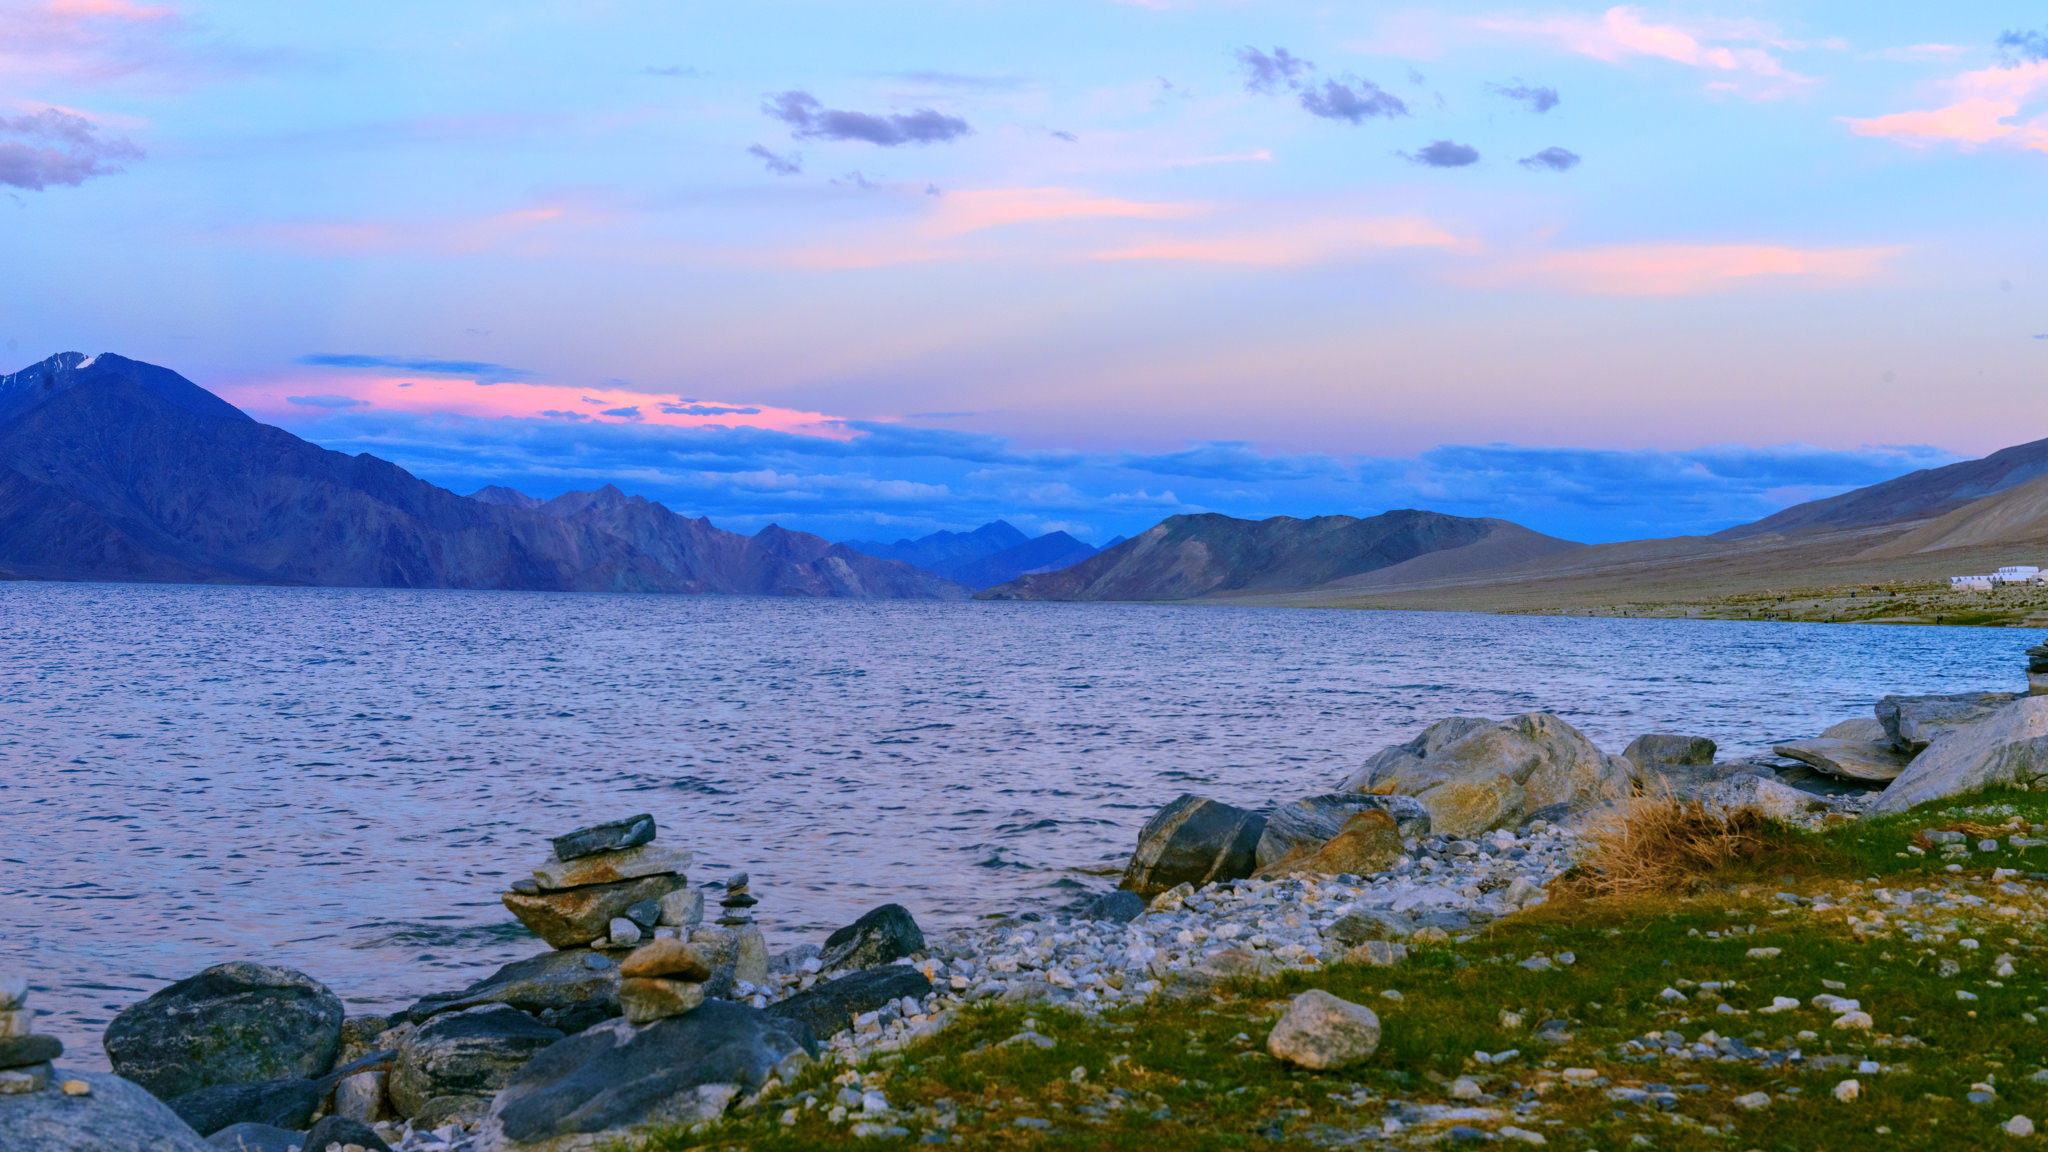 Pangong Lake | Backpacking with Bacon | Female Solo Backpacking